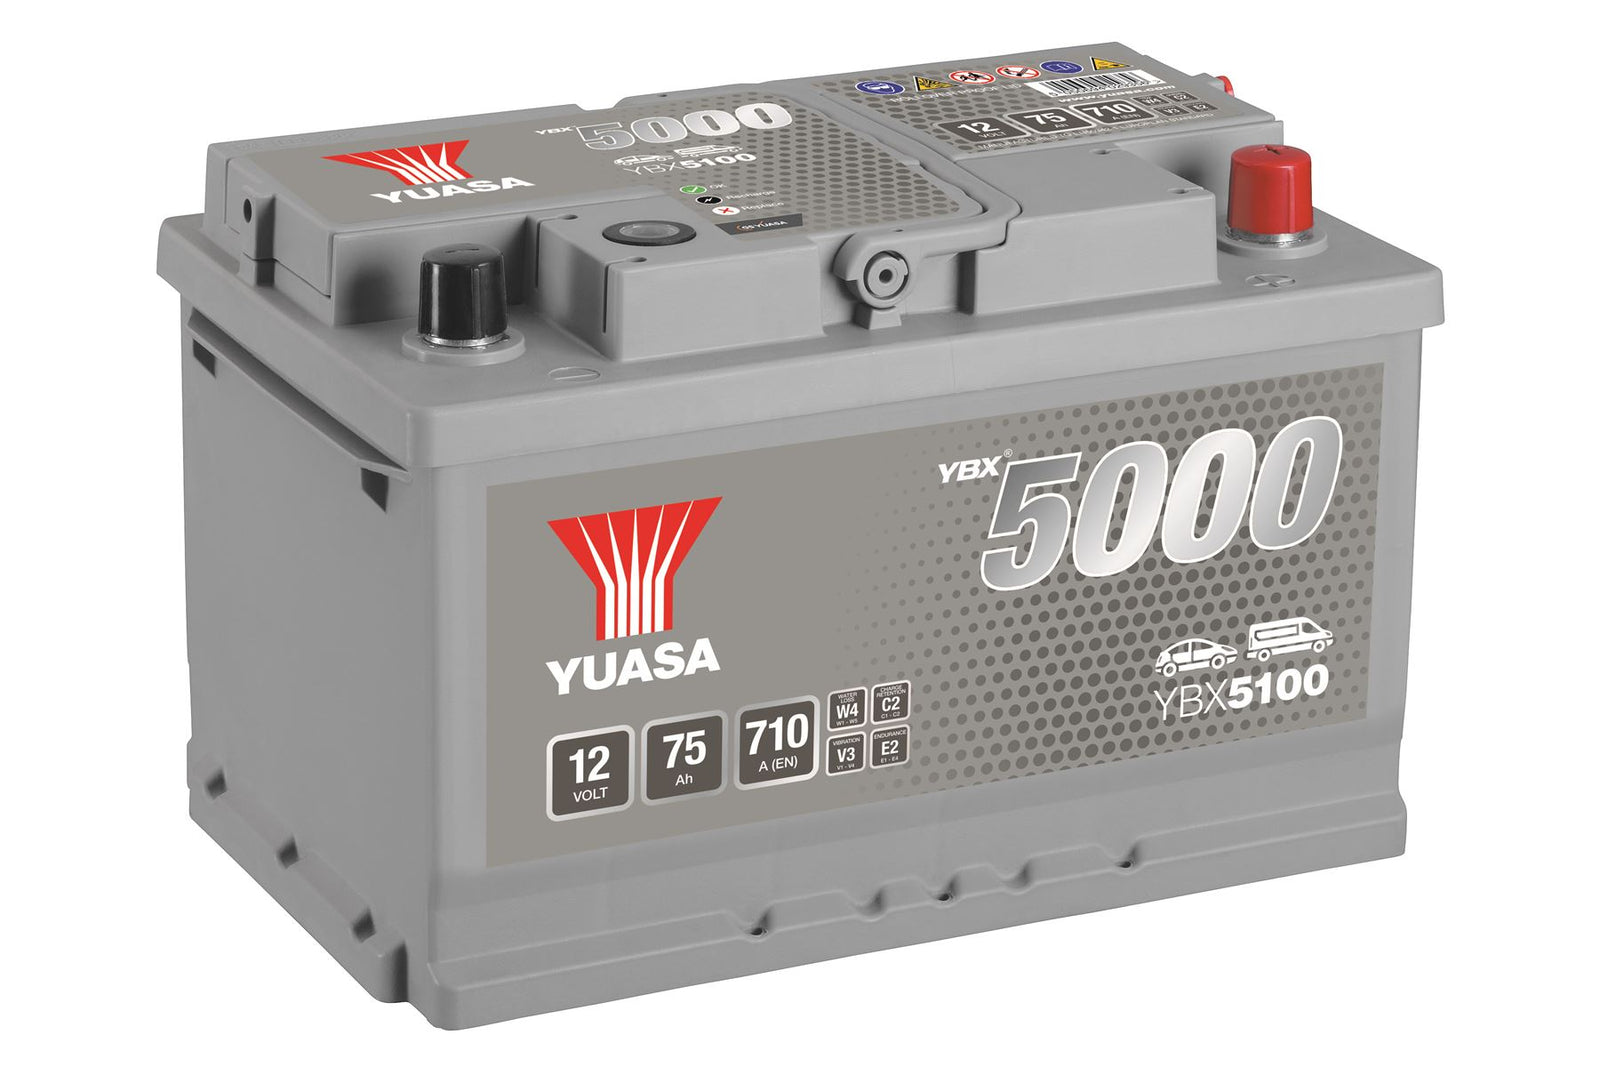 Yuasa YBX5100 Silver High Performance SMF Battery EU DIN